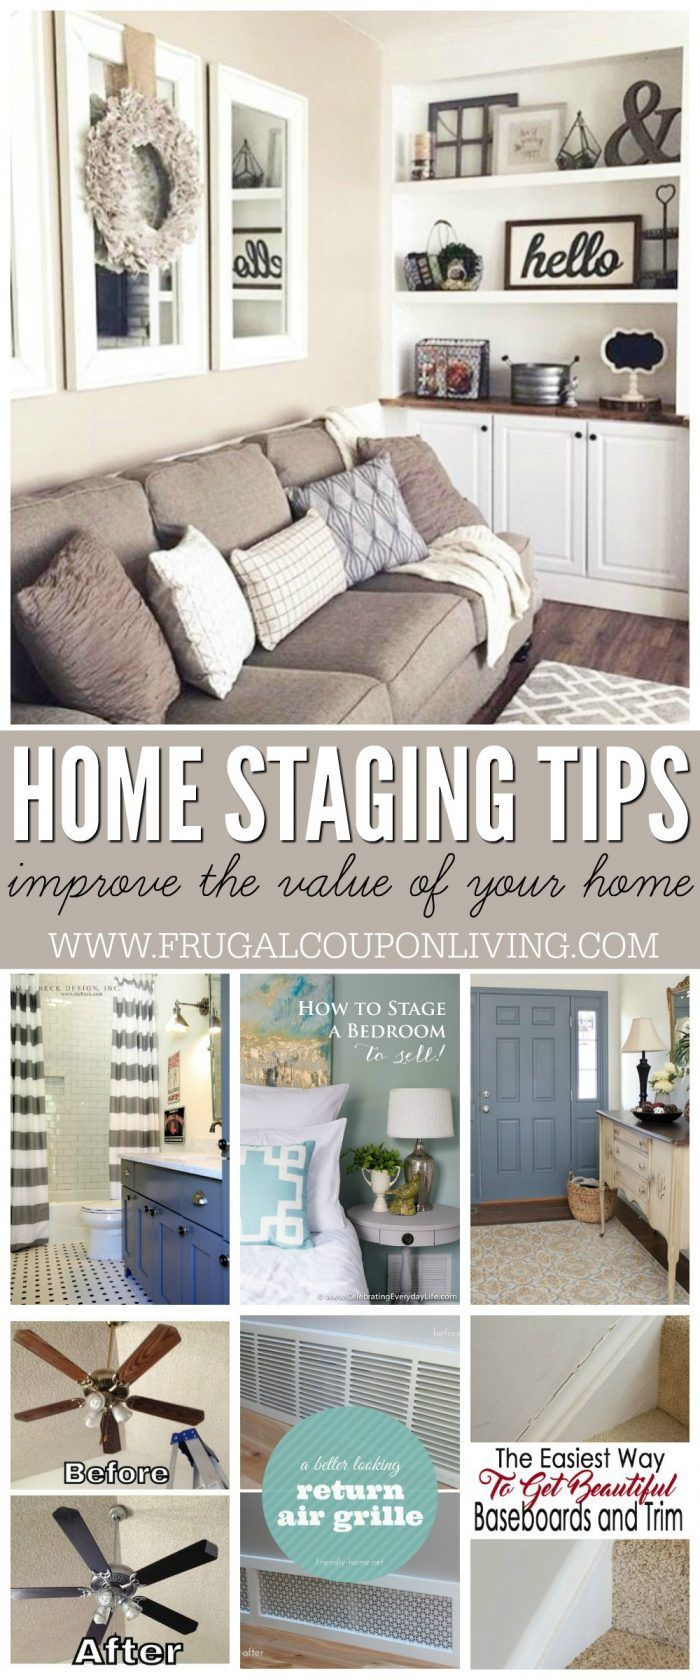 Home Staging Tips and Ideas - Improve the Value of Your Home ... on home tips and tricks, home construction tips, nate berkus painting tips, home packing tips, home color tips, home real estate, home inspection tips, landscaping tips, home selling tips, home decor tips, real estate tips, home audio tips, insurance tips, home remodeling tips, home black and white, home organizing, home survival tips, home security tips, home maintenance tips, home management tips,